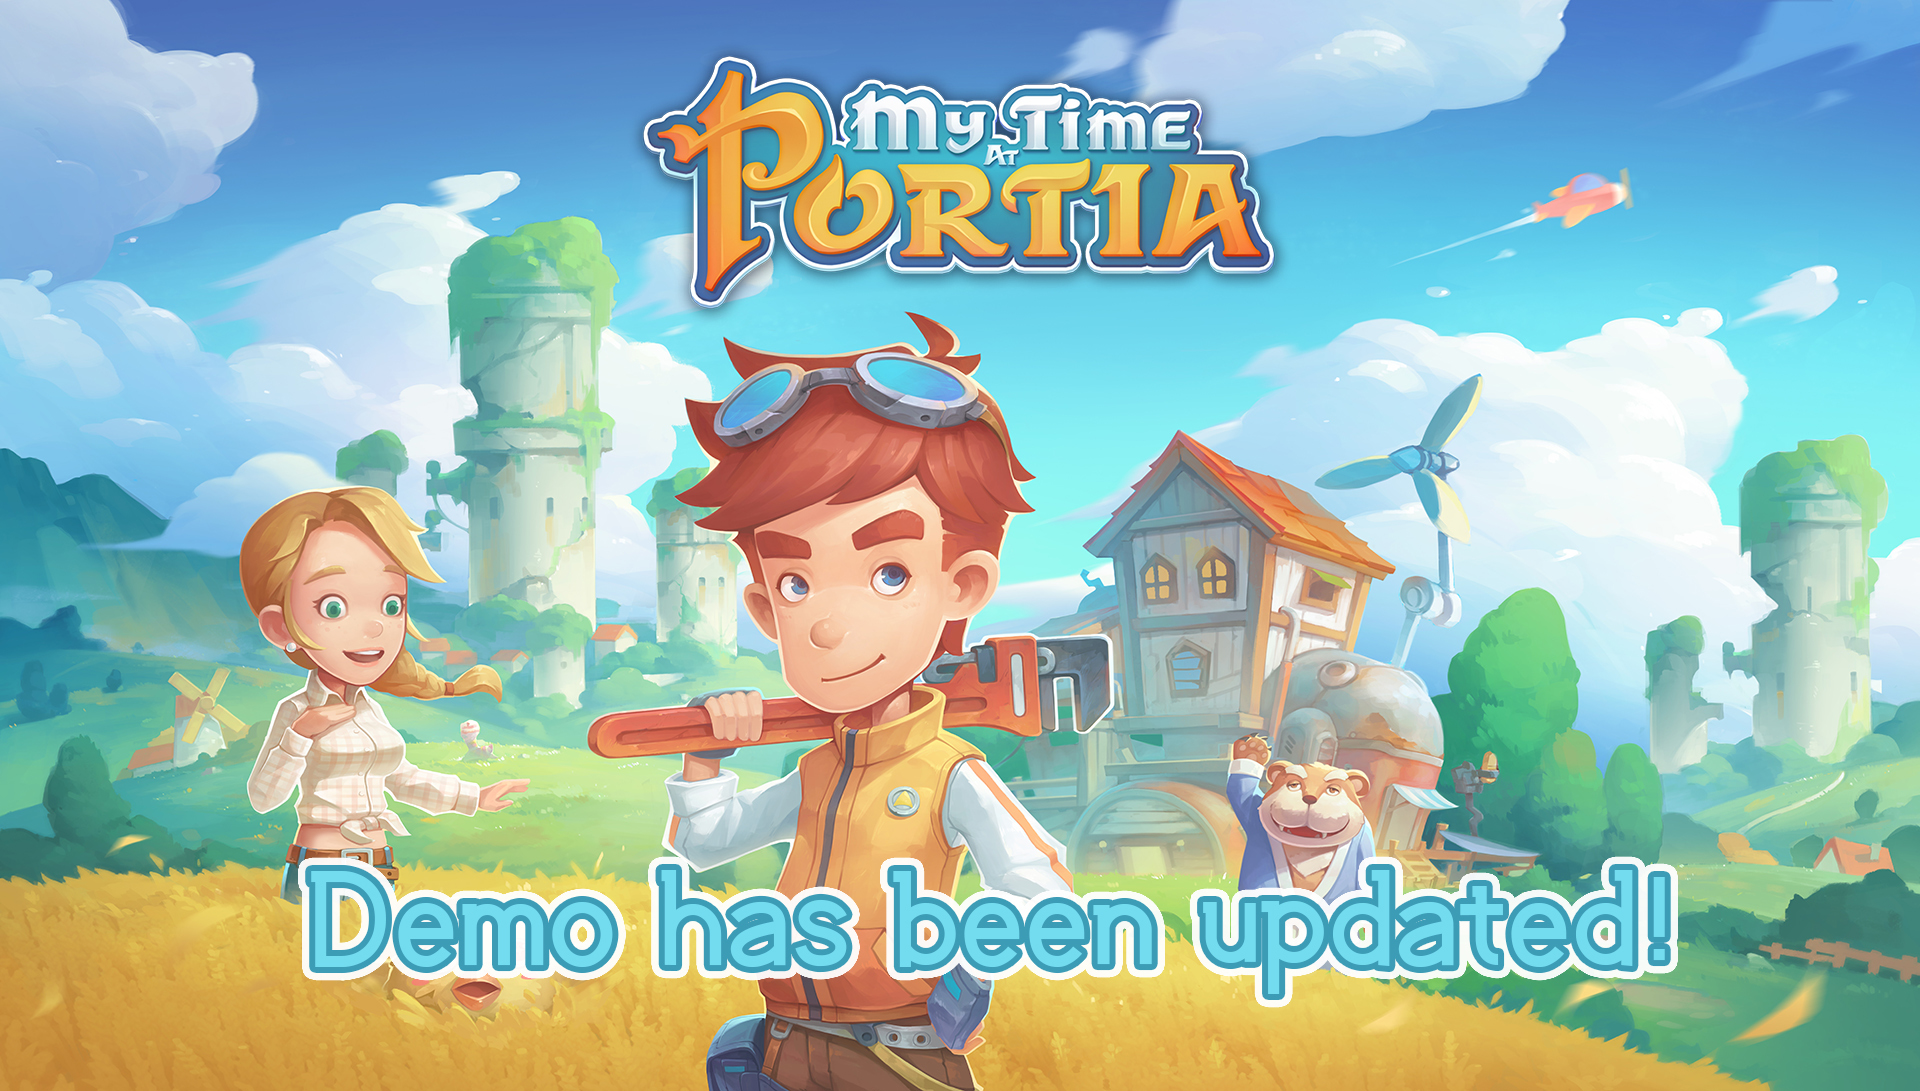 Switch Runner 3 Launch Edition Bonus English Us Games We Have Just Updated The My Time At Portia Demo Is Now Based On Alpha Version 80 And Fixed Some Small Issues Optimised Assets